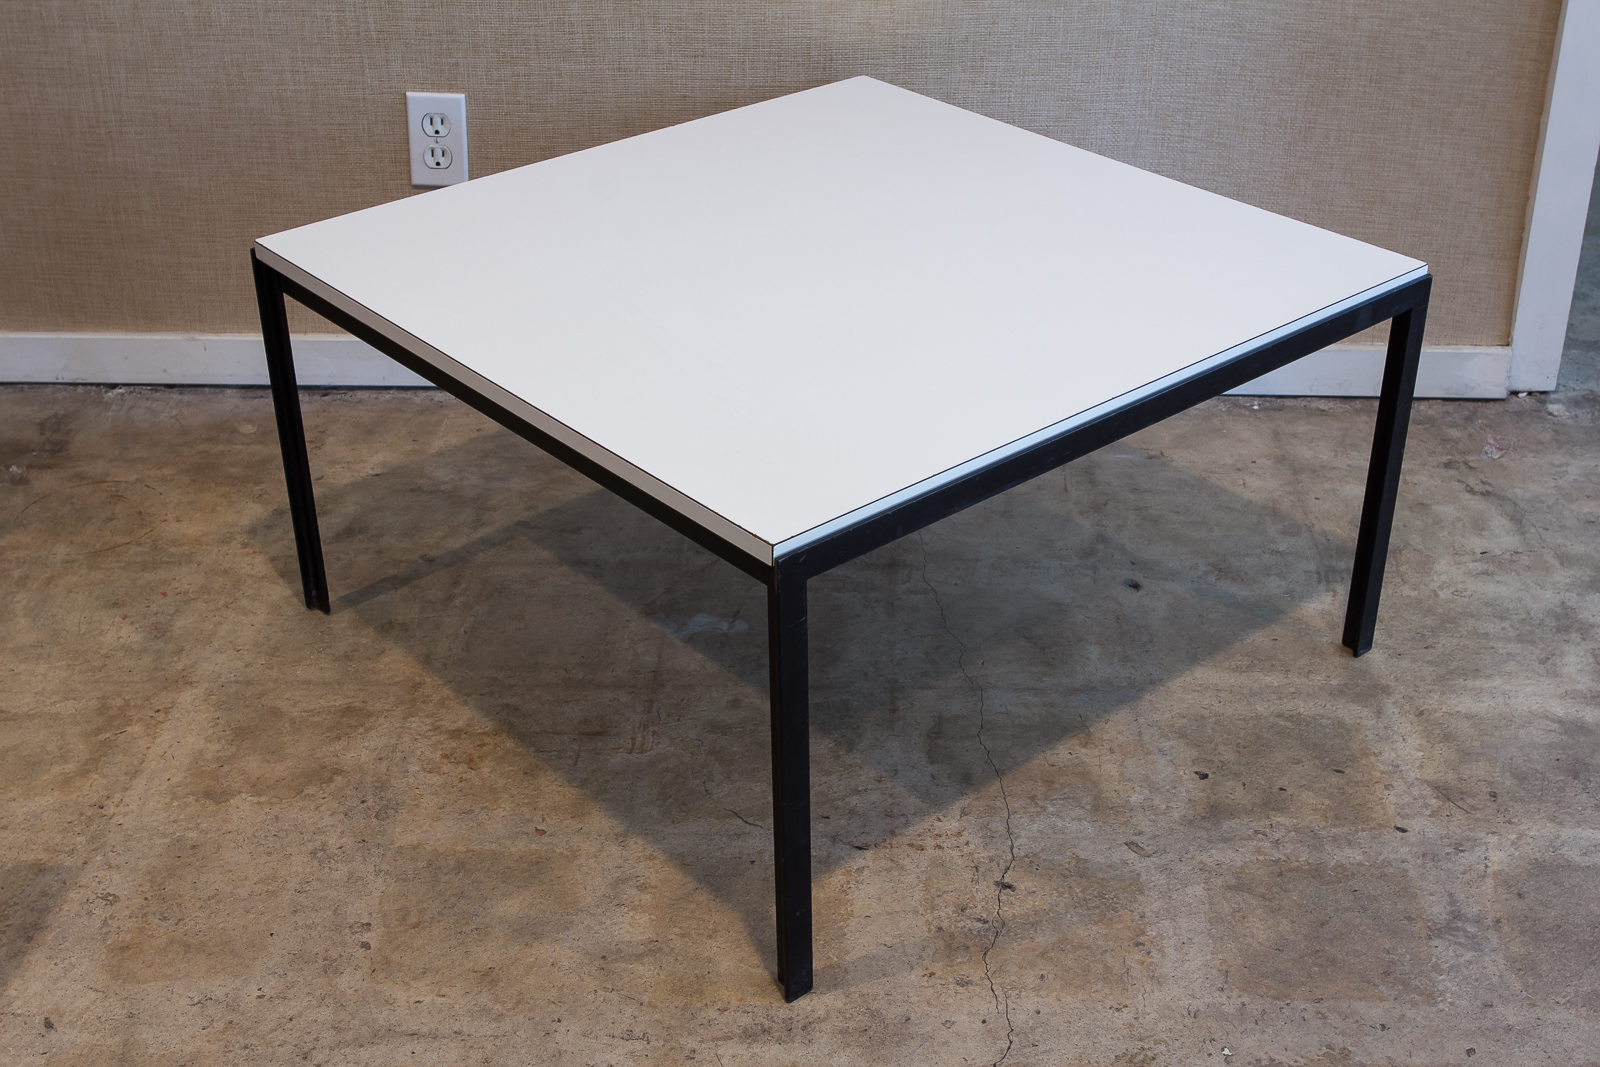 Charming Knoll Square T Angle Coffee Table With White Formica Top